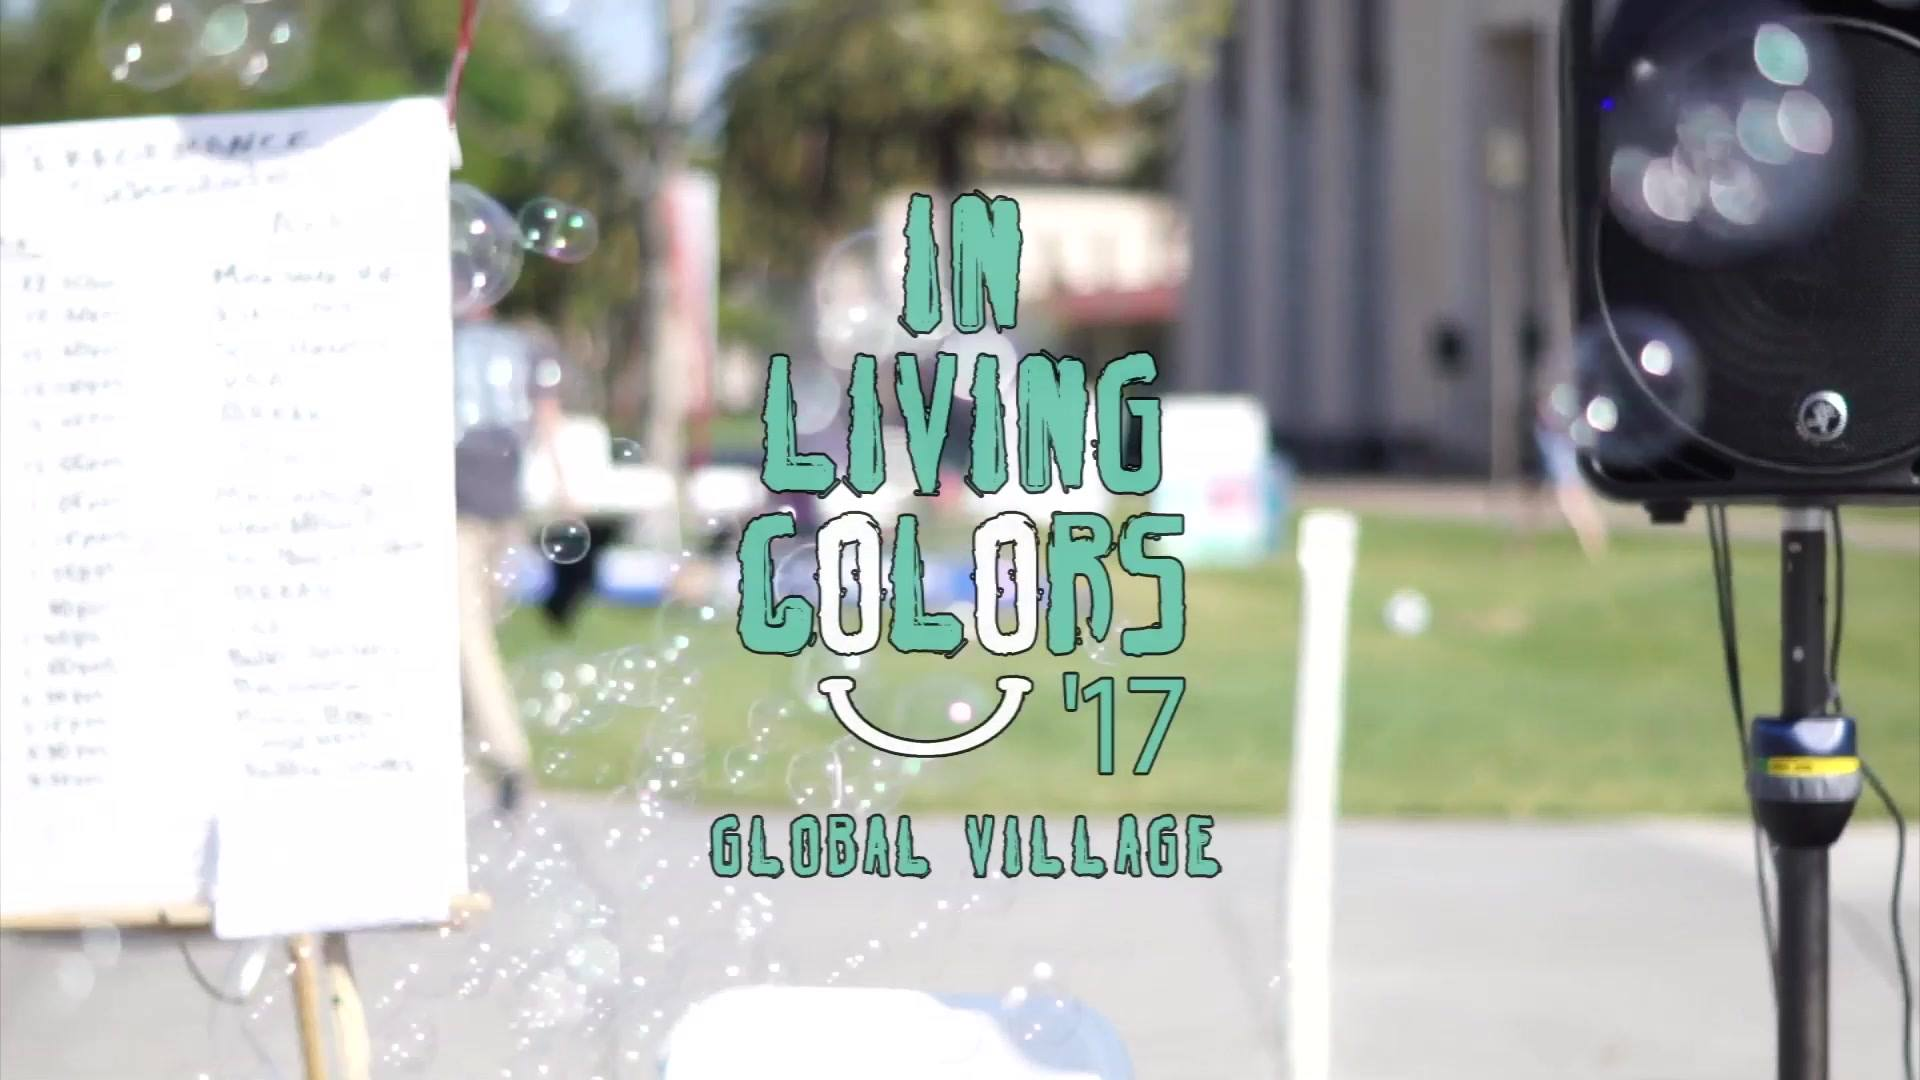 2017 Global Village: In Living Colors